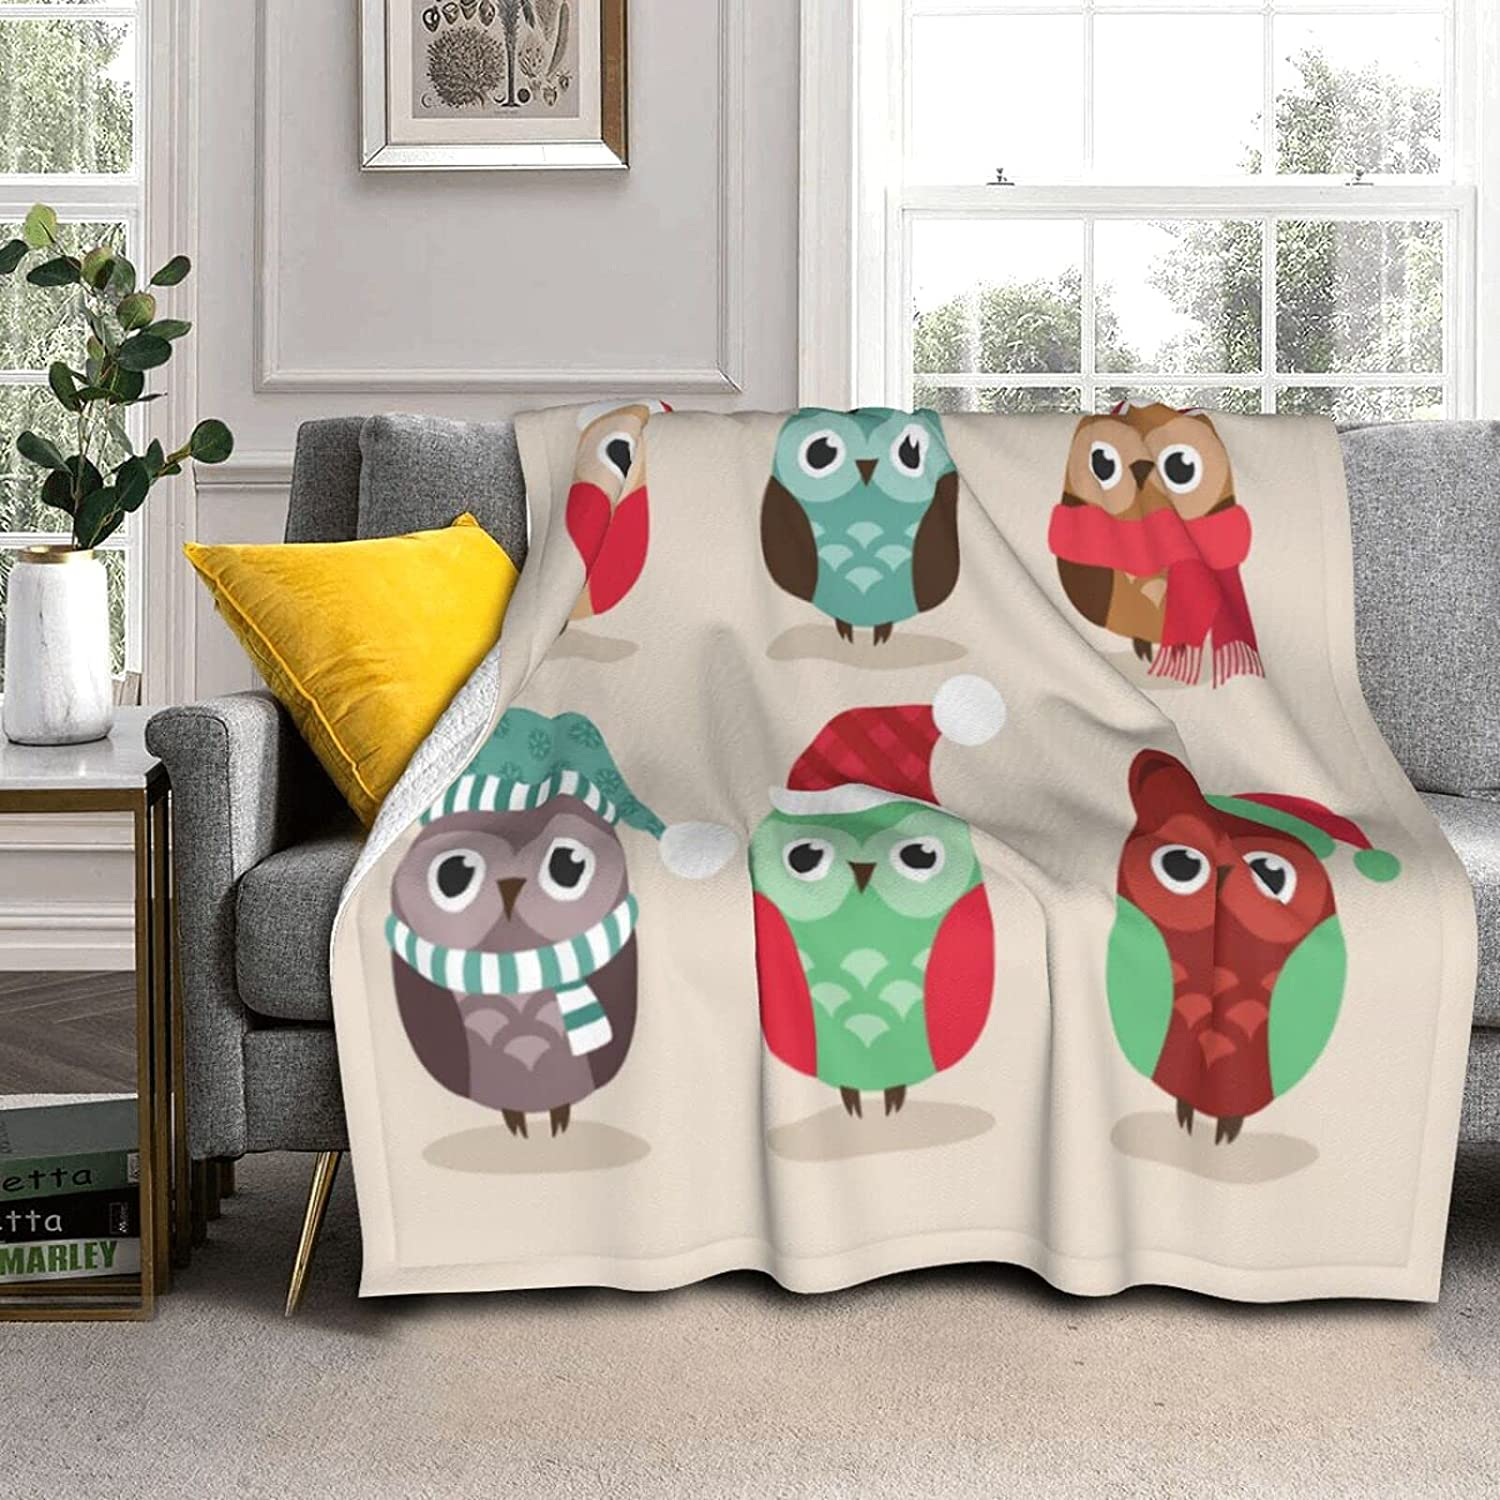 Cute Christmas Owls Cozy Soft with Reversible Fleece SALENEW very Max 90% OFF popular Blanket She